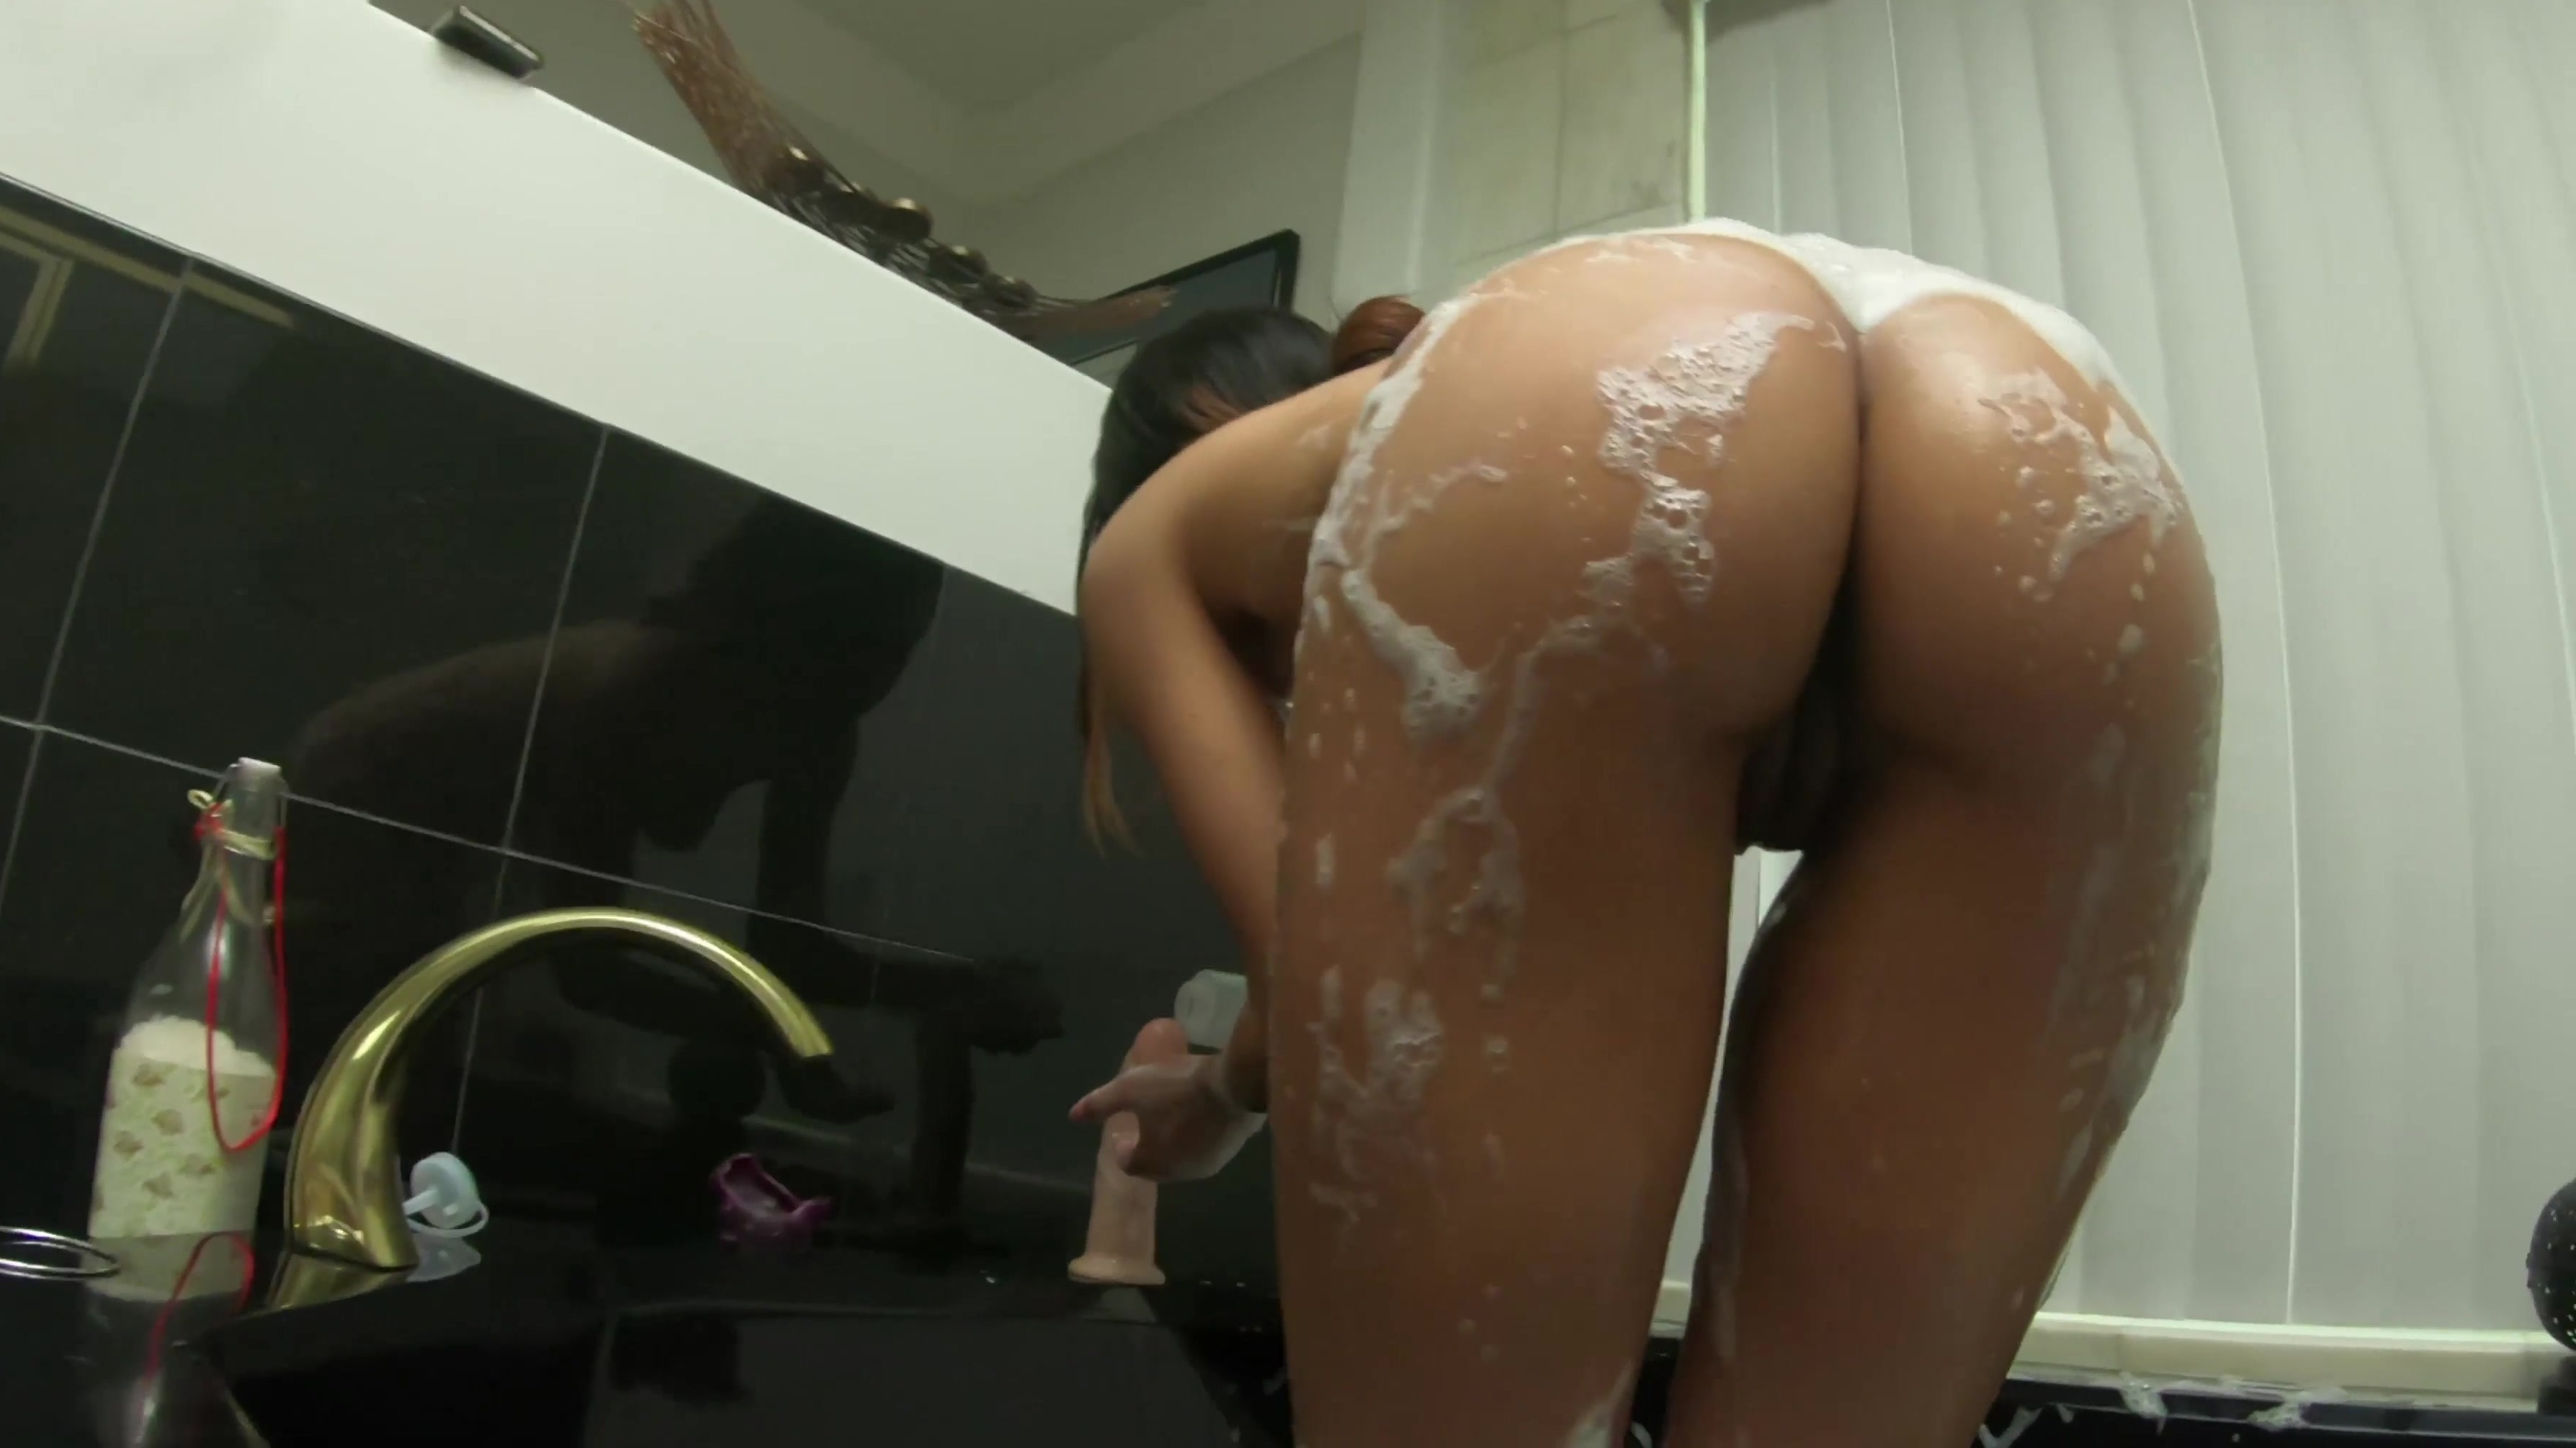 Wiley recommend Makeout double blowjob shower fingering